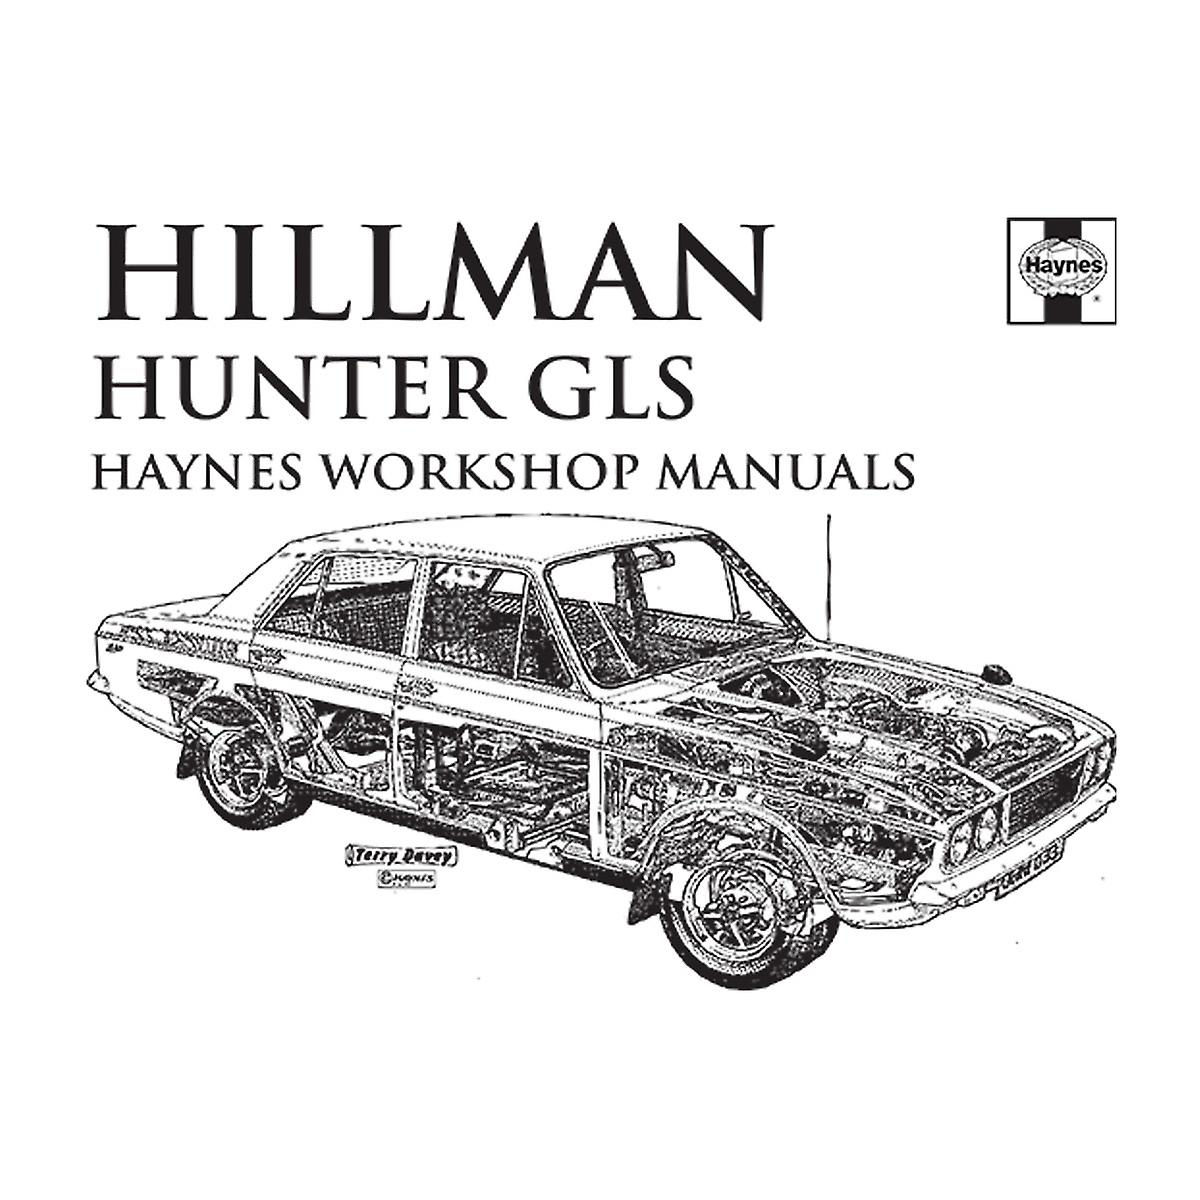 Haynes Workshop Manual 0033 Hillman Hunter GLS Black Men's